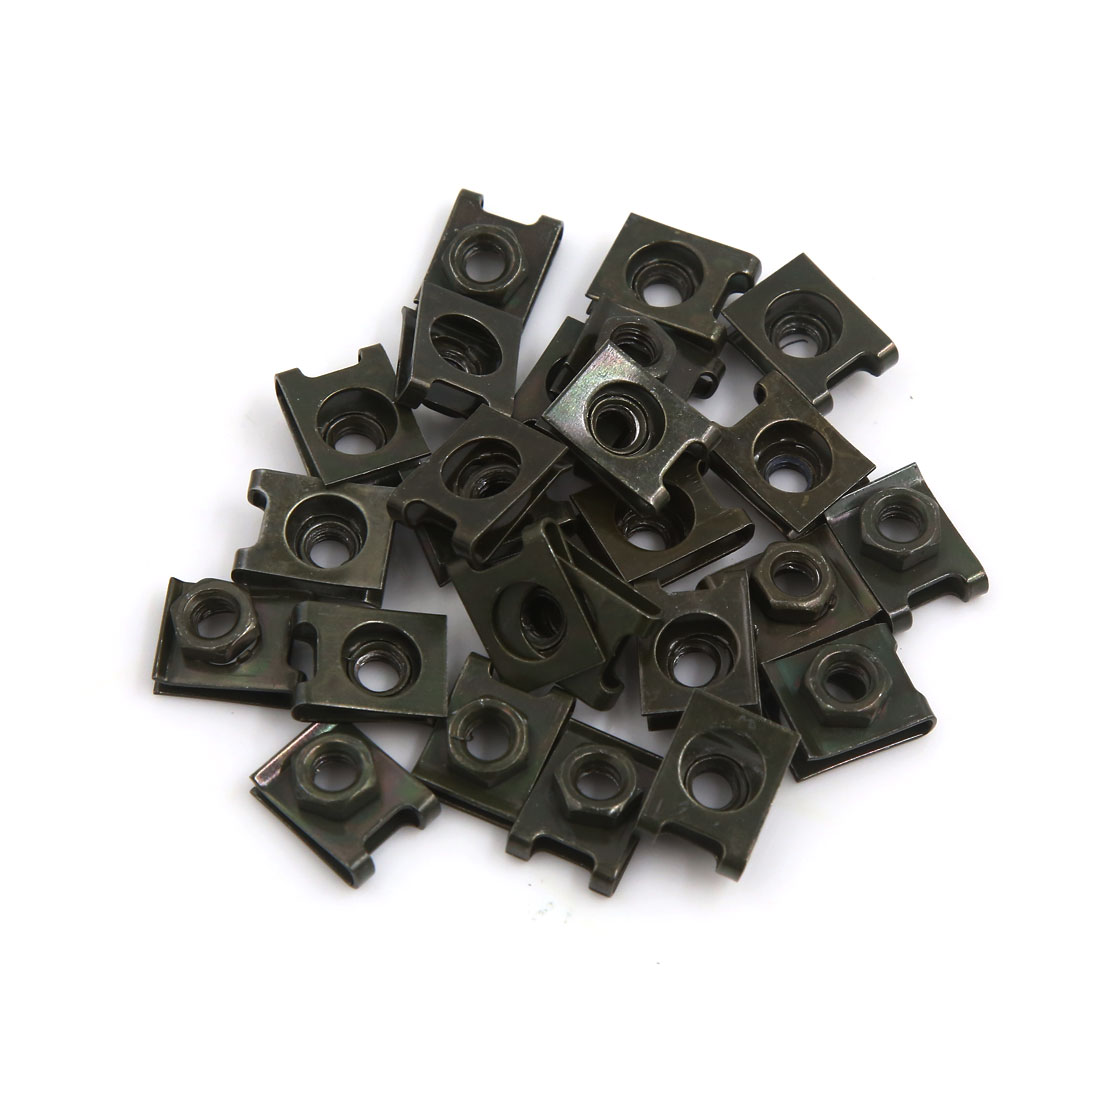 25Pcs Dark Green Metal Motorcycle Windscreen Fairing Fastener Clip for 6mm Screw